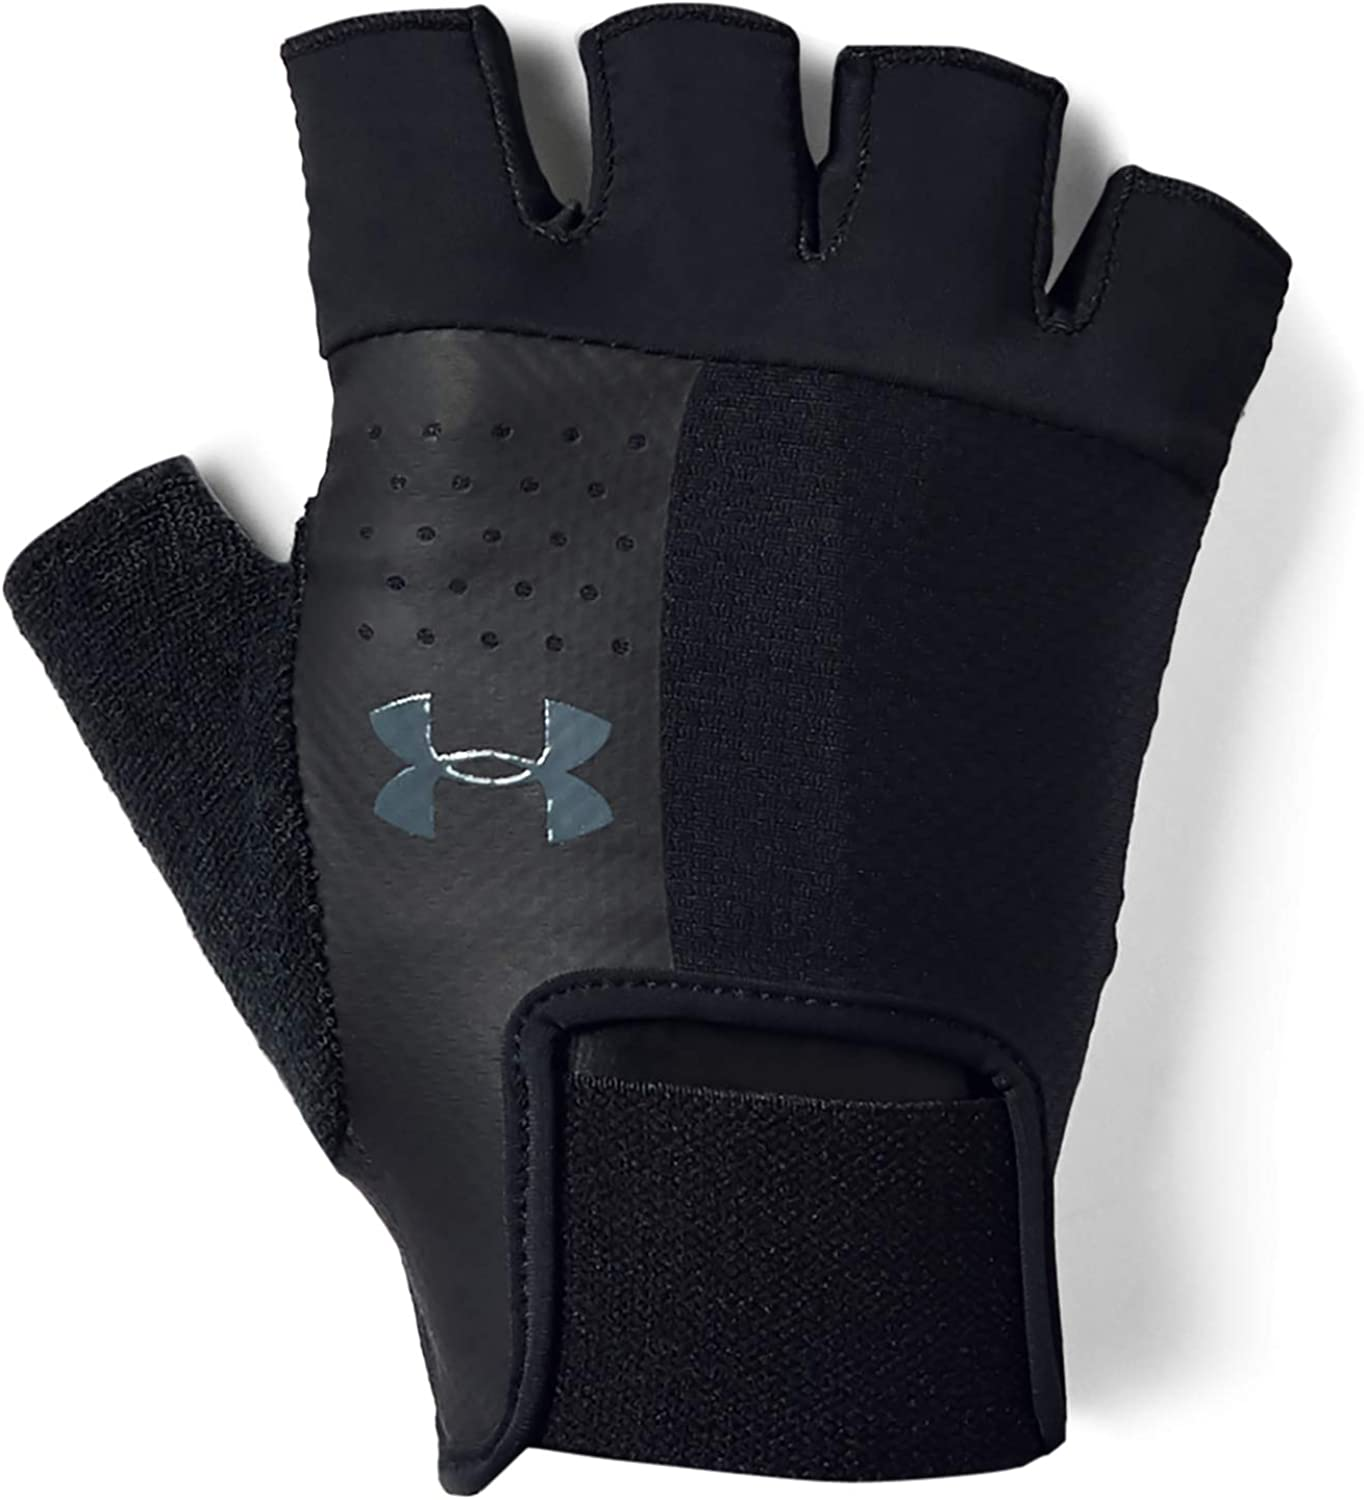 Under Armour Training Guantes, Hombre